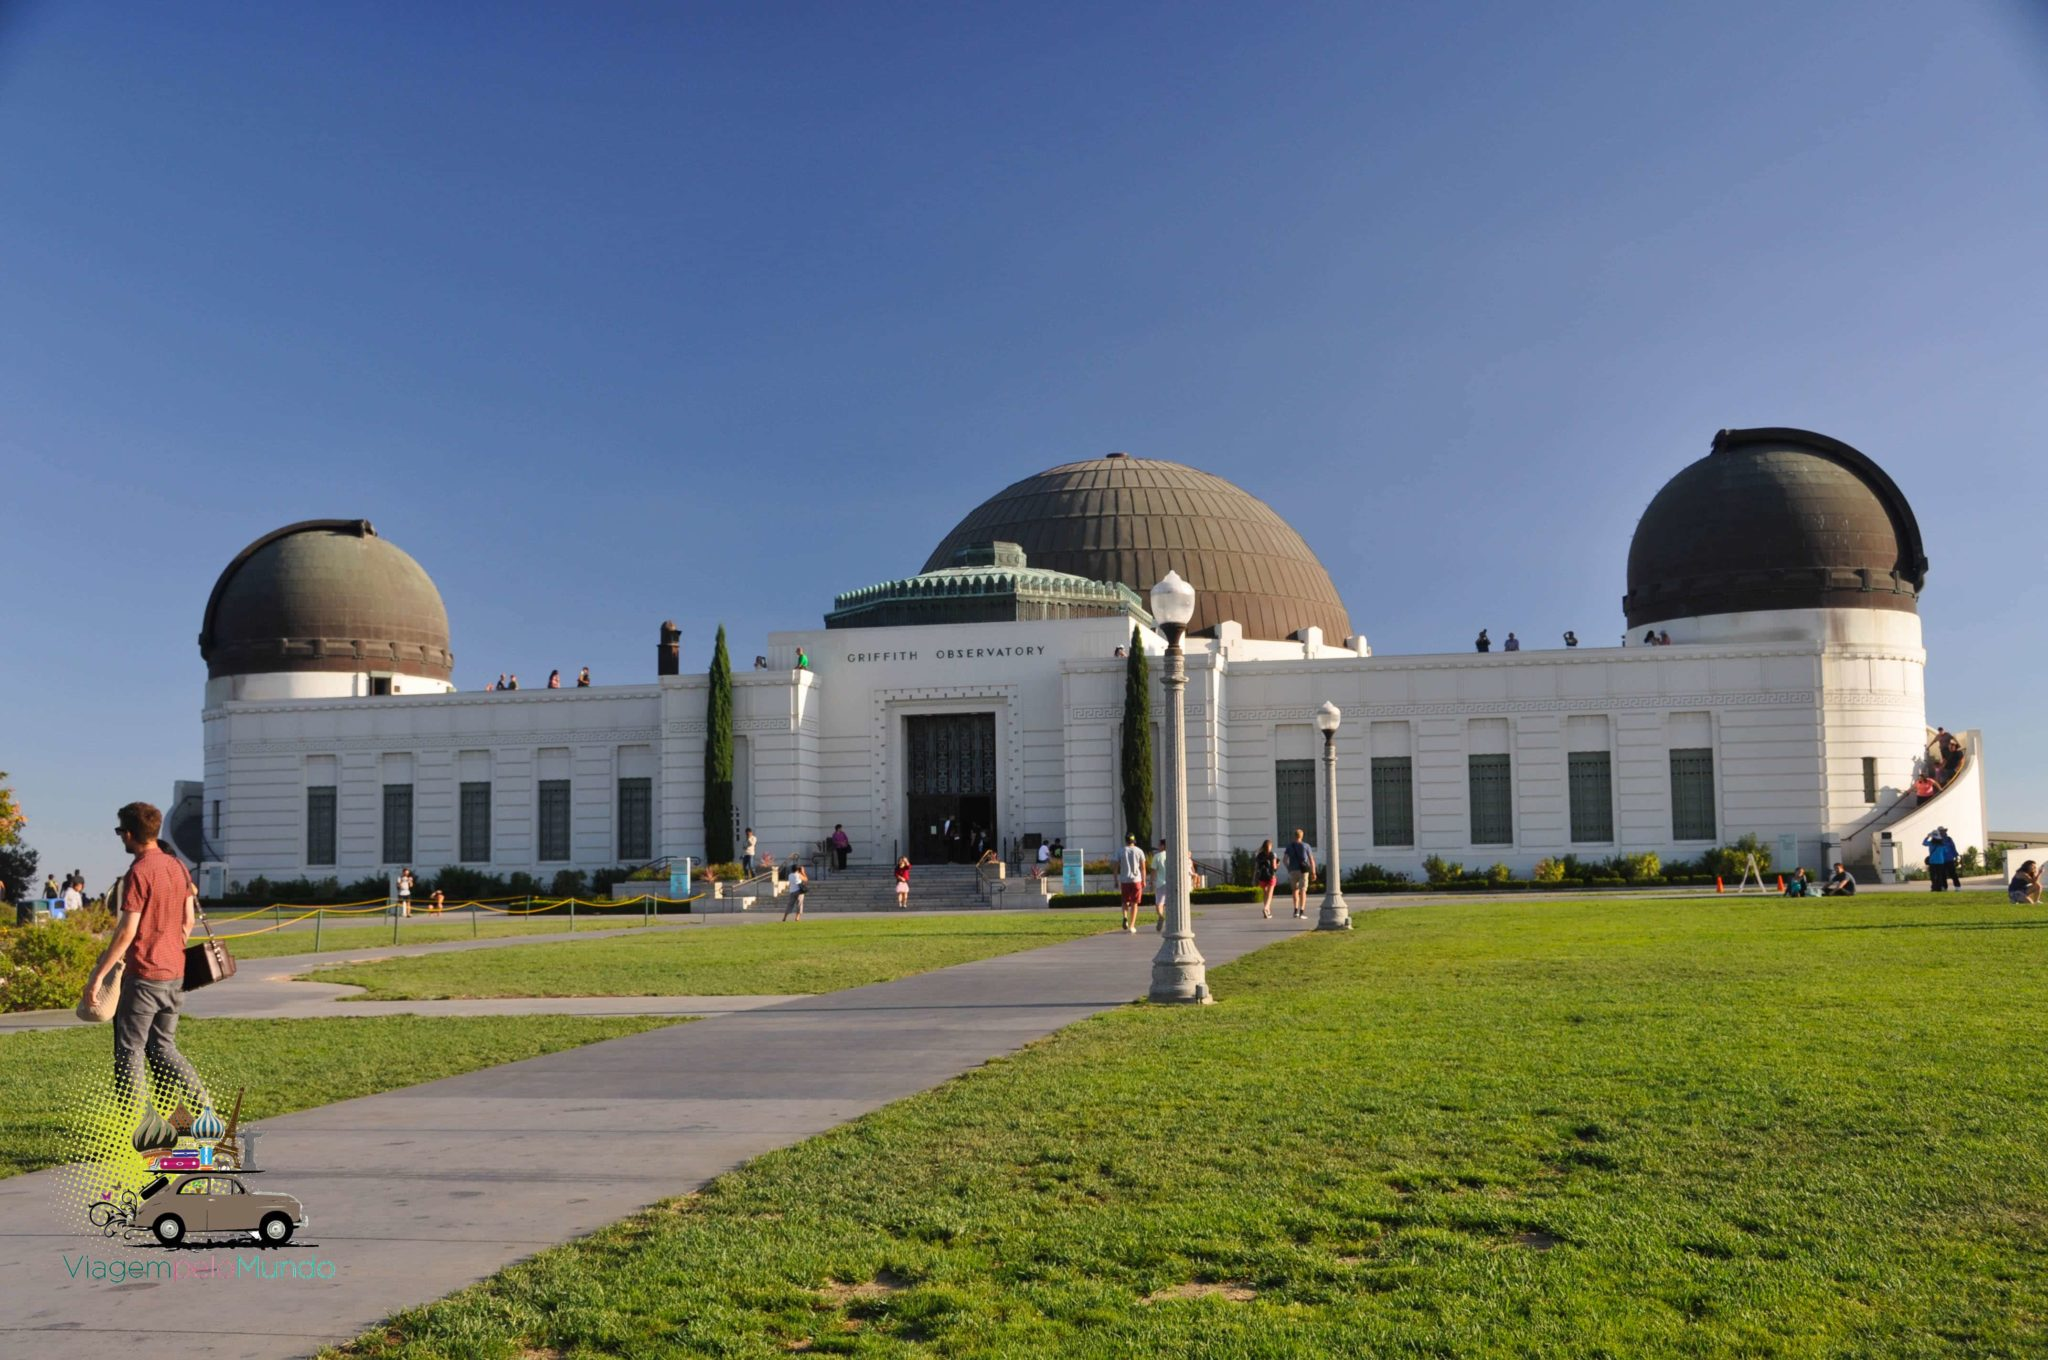 Observatório Griffith Los Angeles